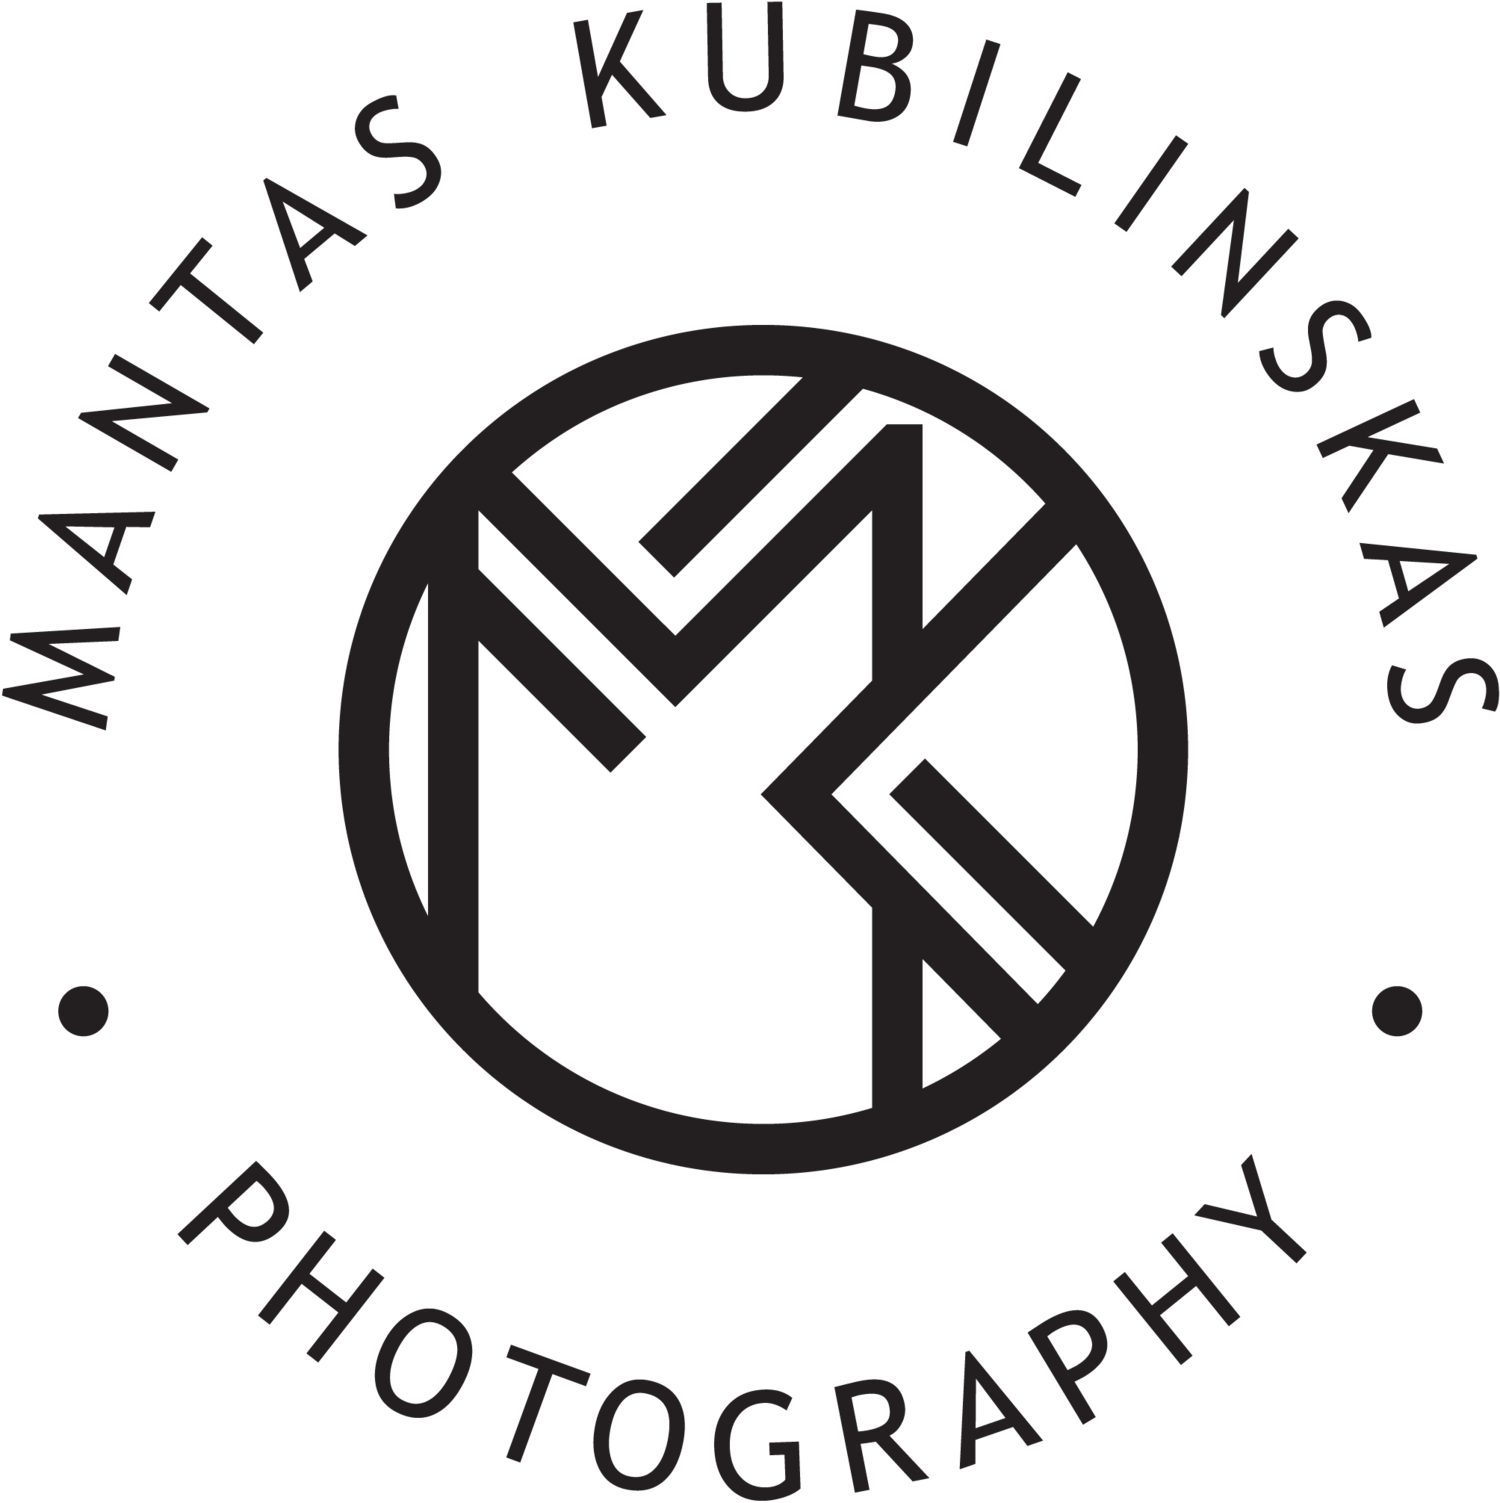 Mantas Kubilinskas Photography | Washington DC Based Photojournalistic Wedding Photographer